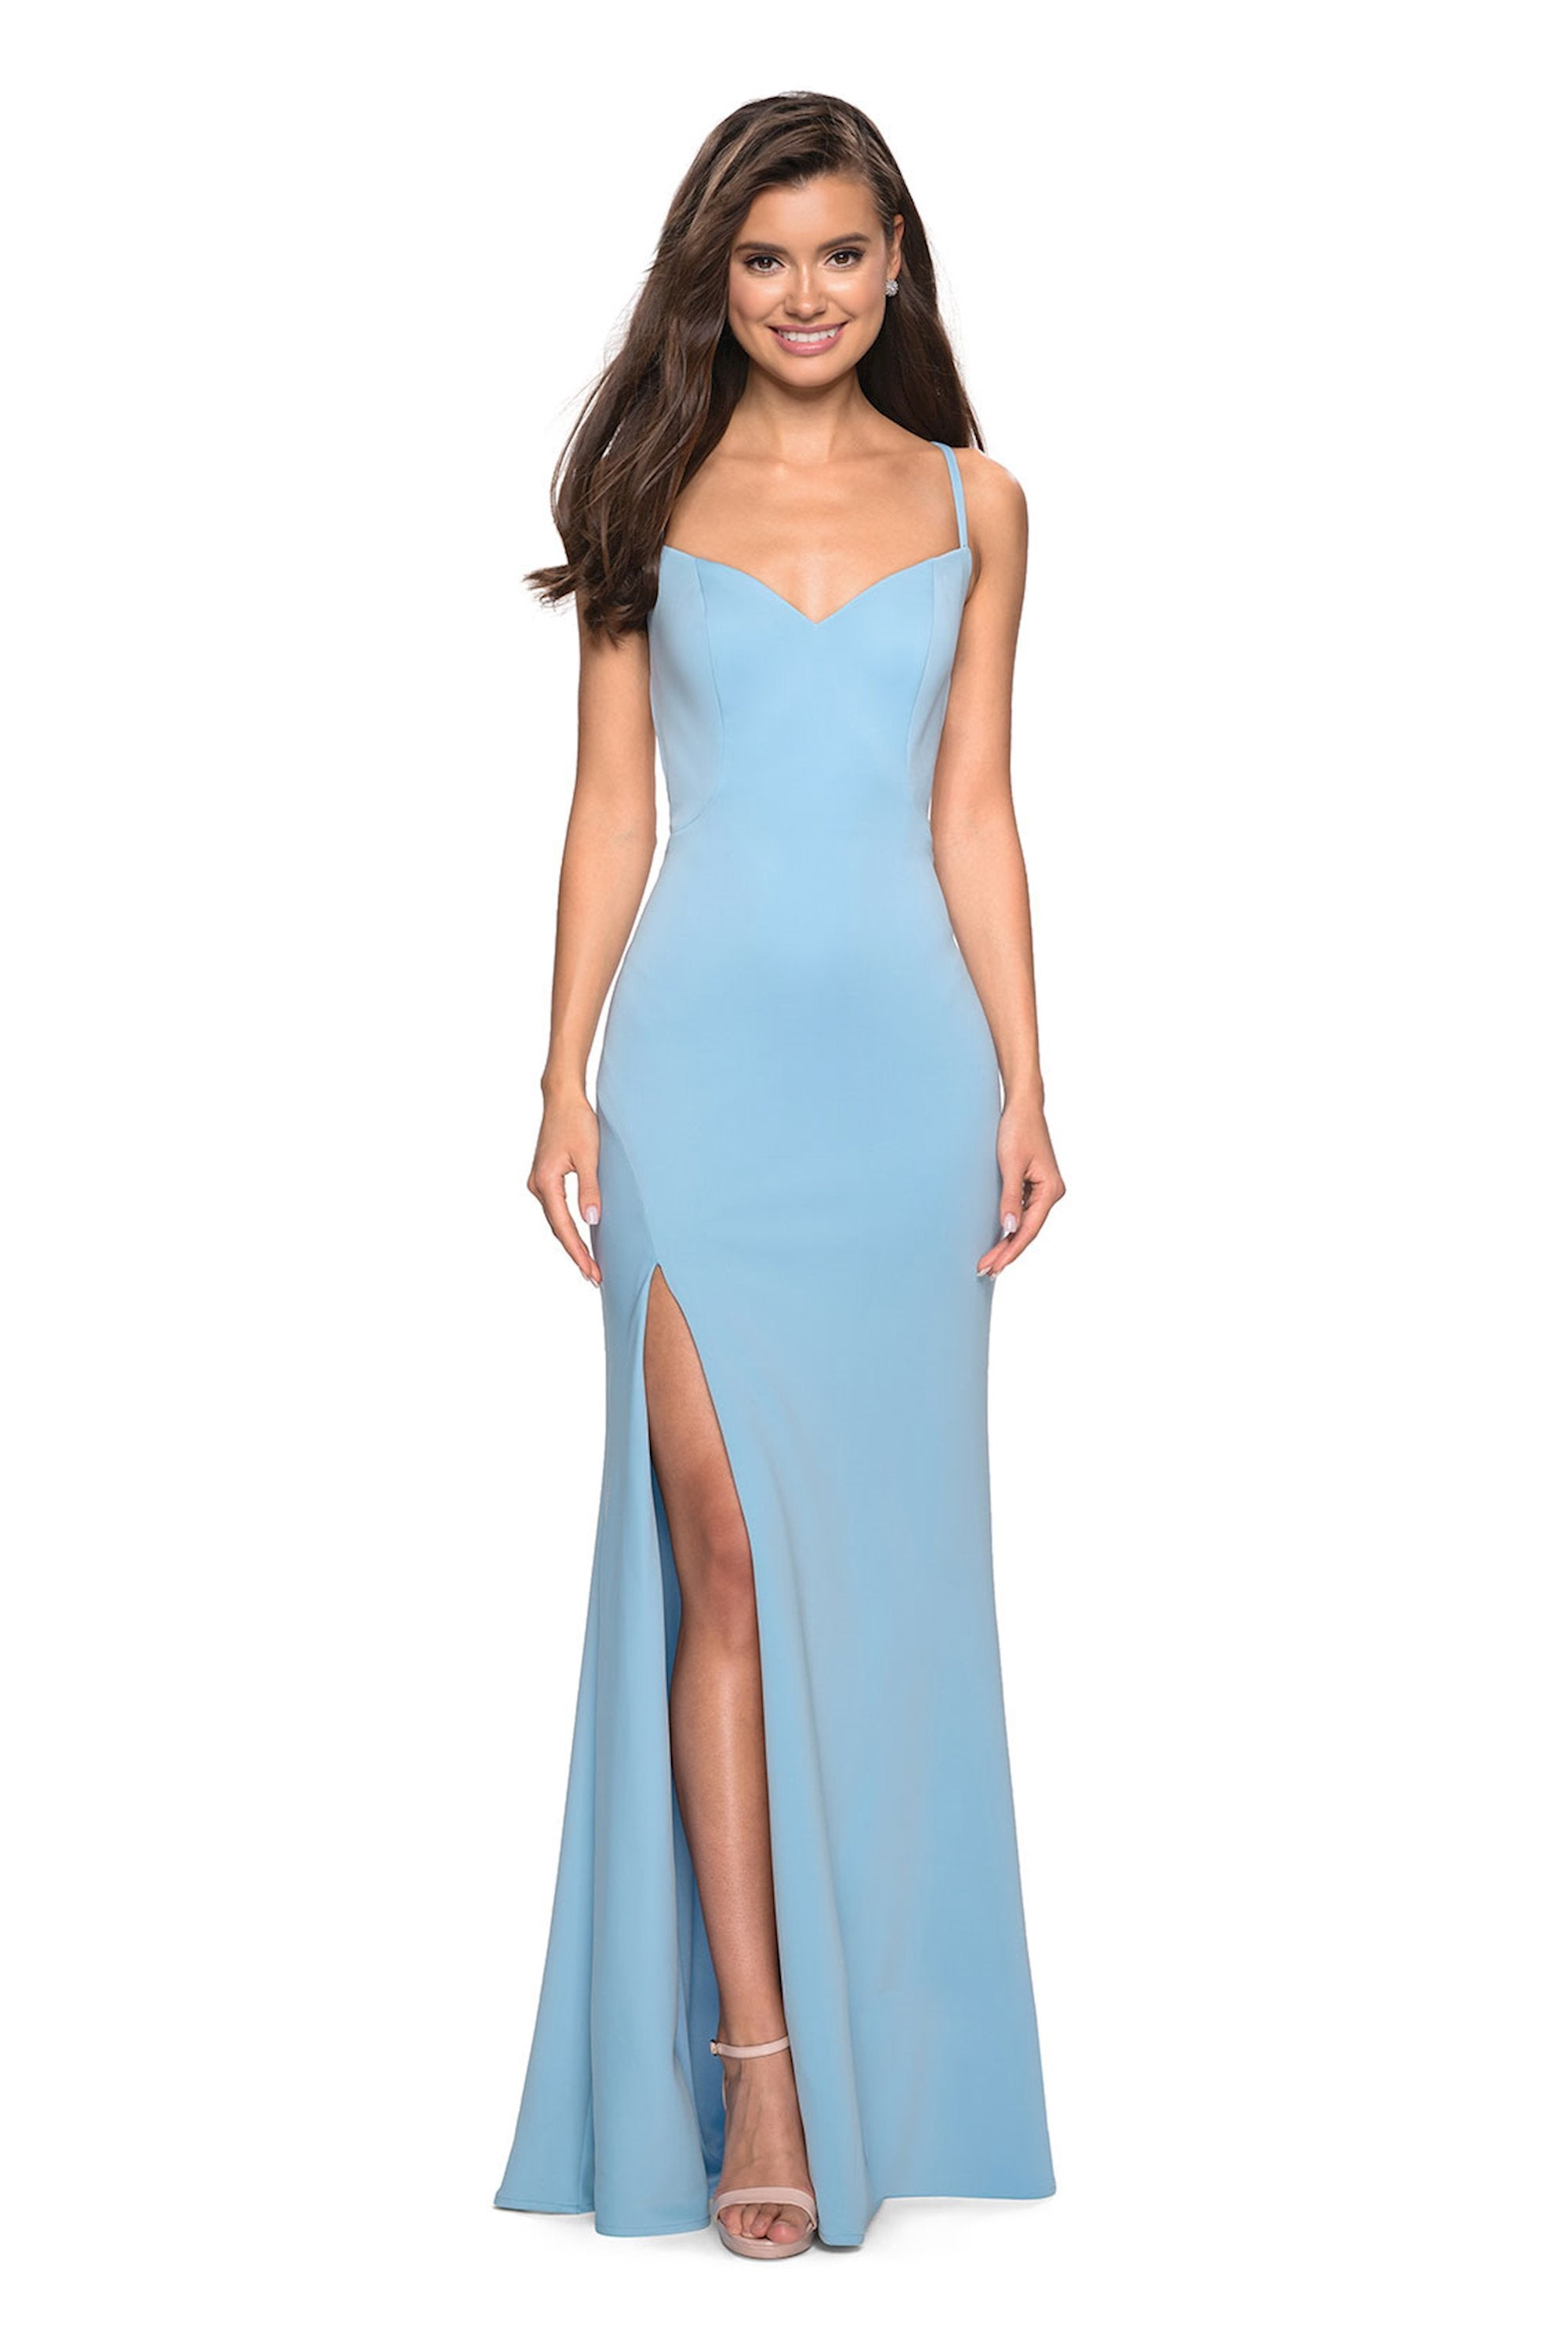 La Femme - Long Crisscross-Strapped High Slit Gown 27657  In Blue